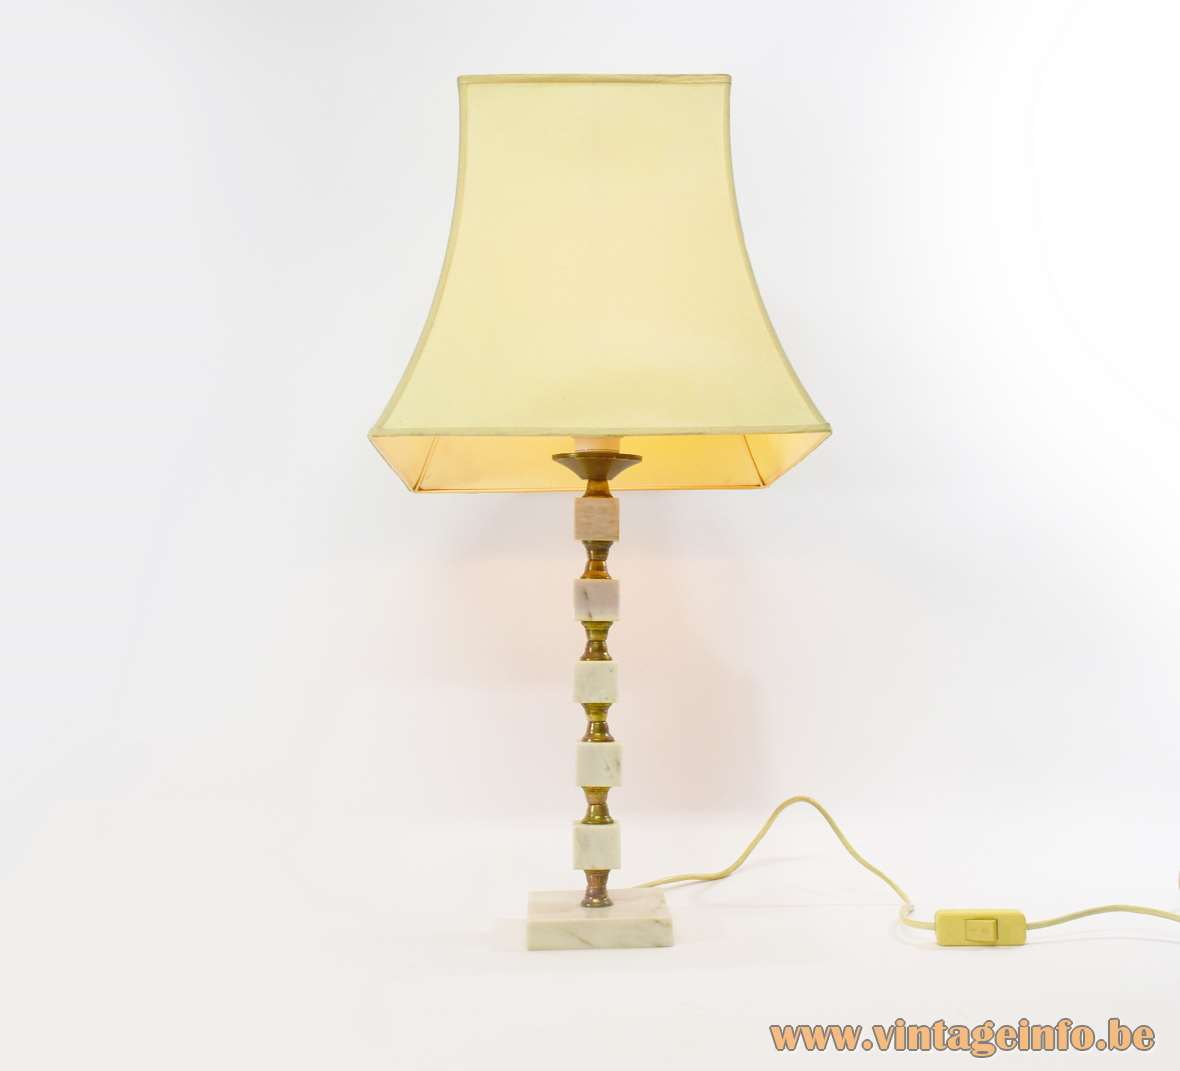 Bulgarian table lamp square marble base & cubes brass rod white pagoda lampshade 1960s 1970s